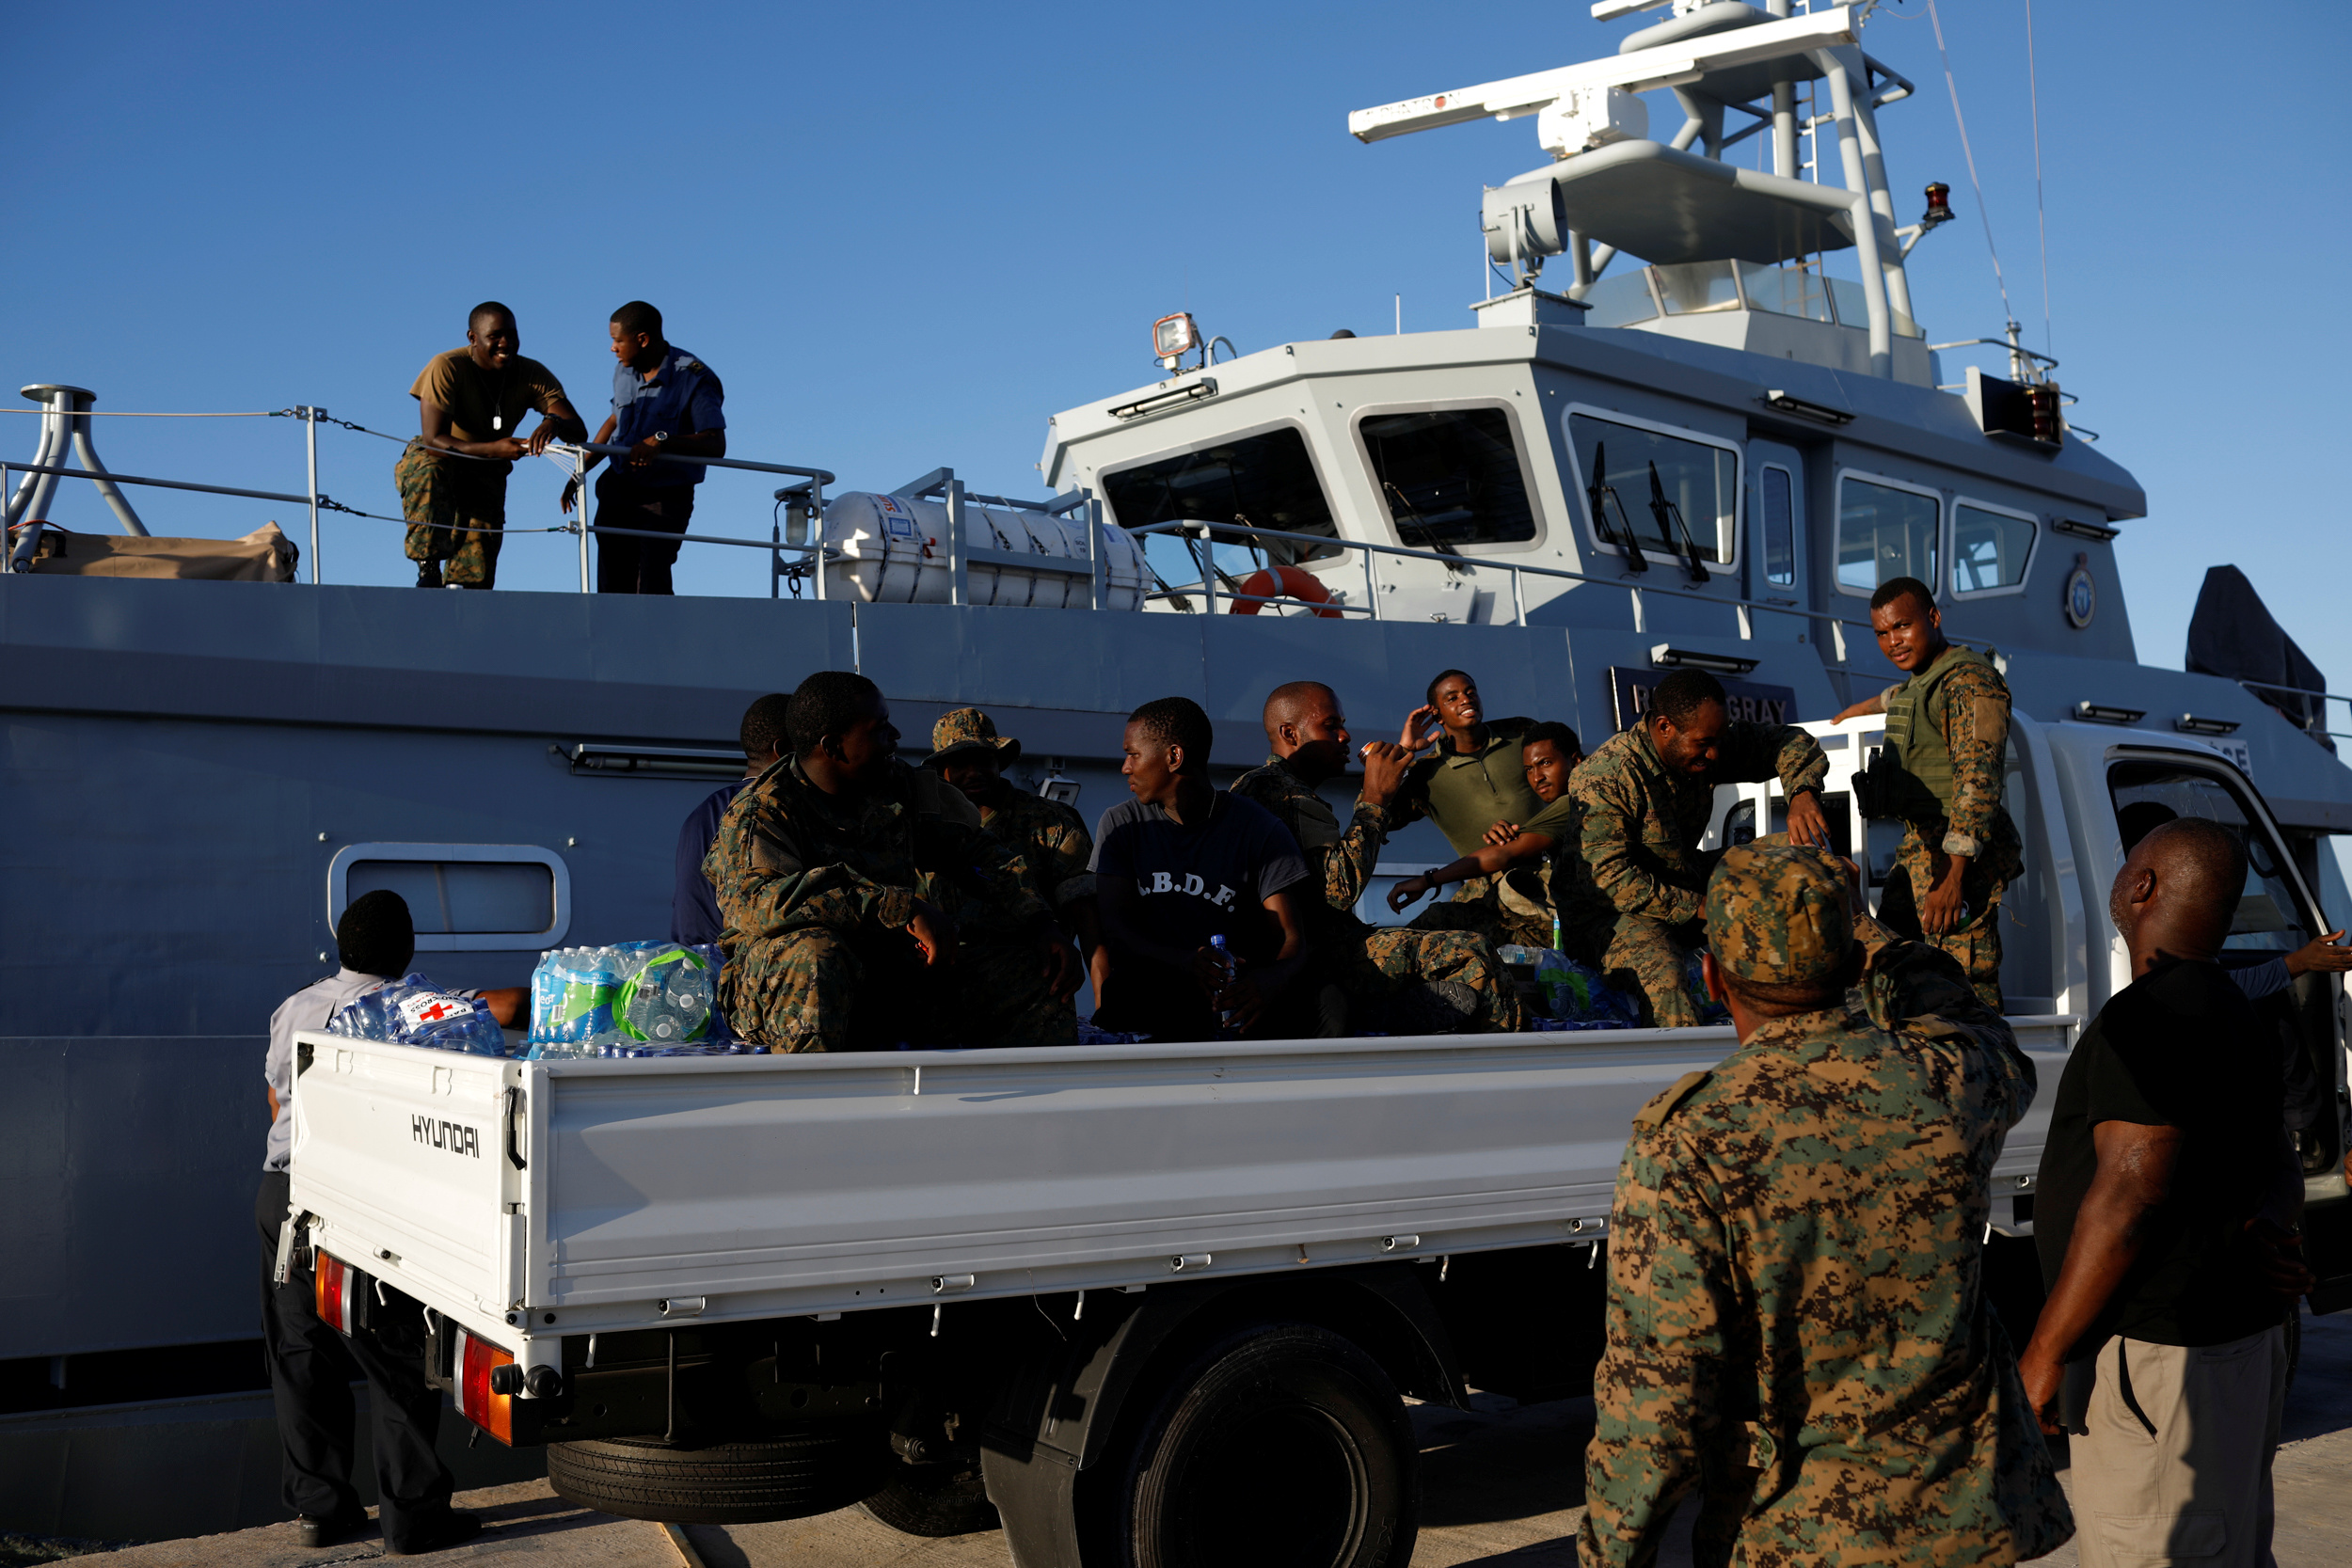 Soldiers are seen at Marsh Harbour Government Port during an evacuation operation after Hurricane Dorian hit the Abaco Islands in Marsh Harbour, Bahamas, September 6, 2019. REUTERS/Marco Bello